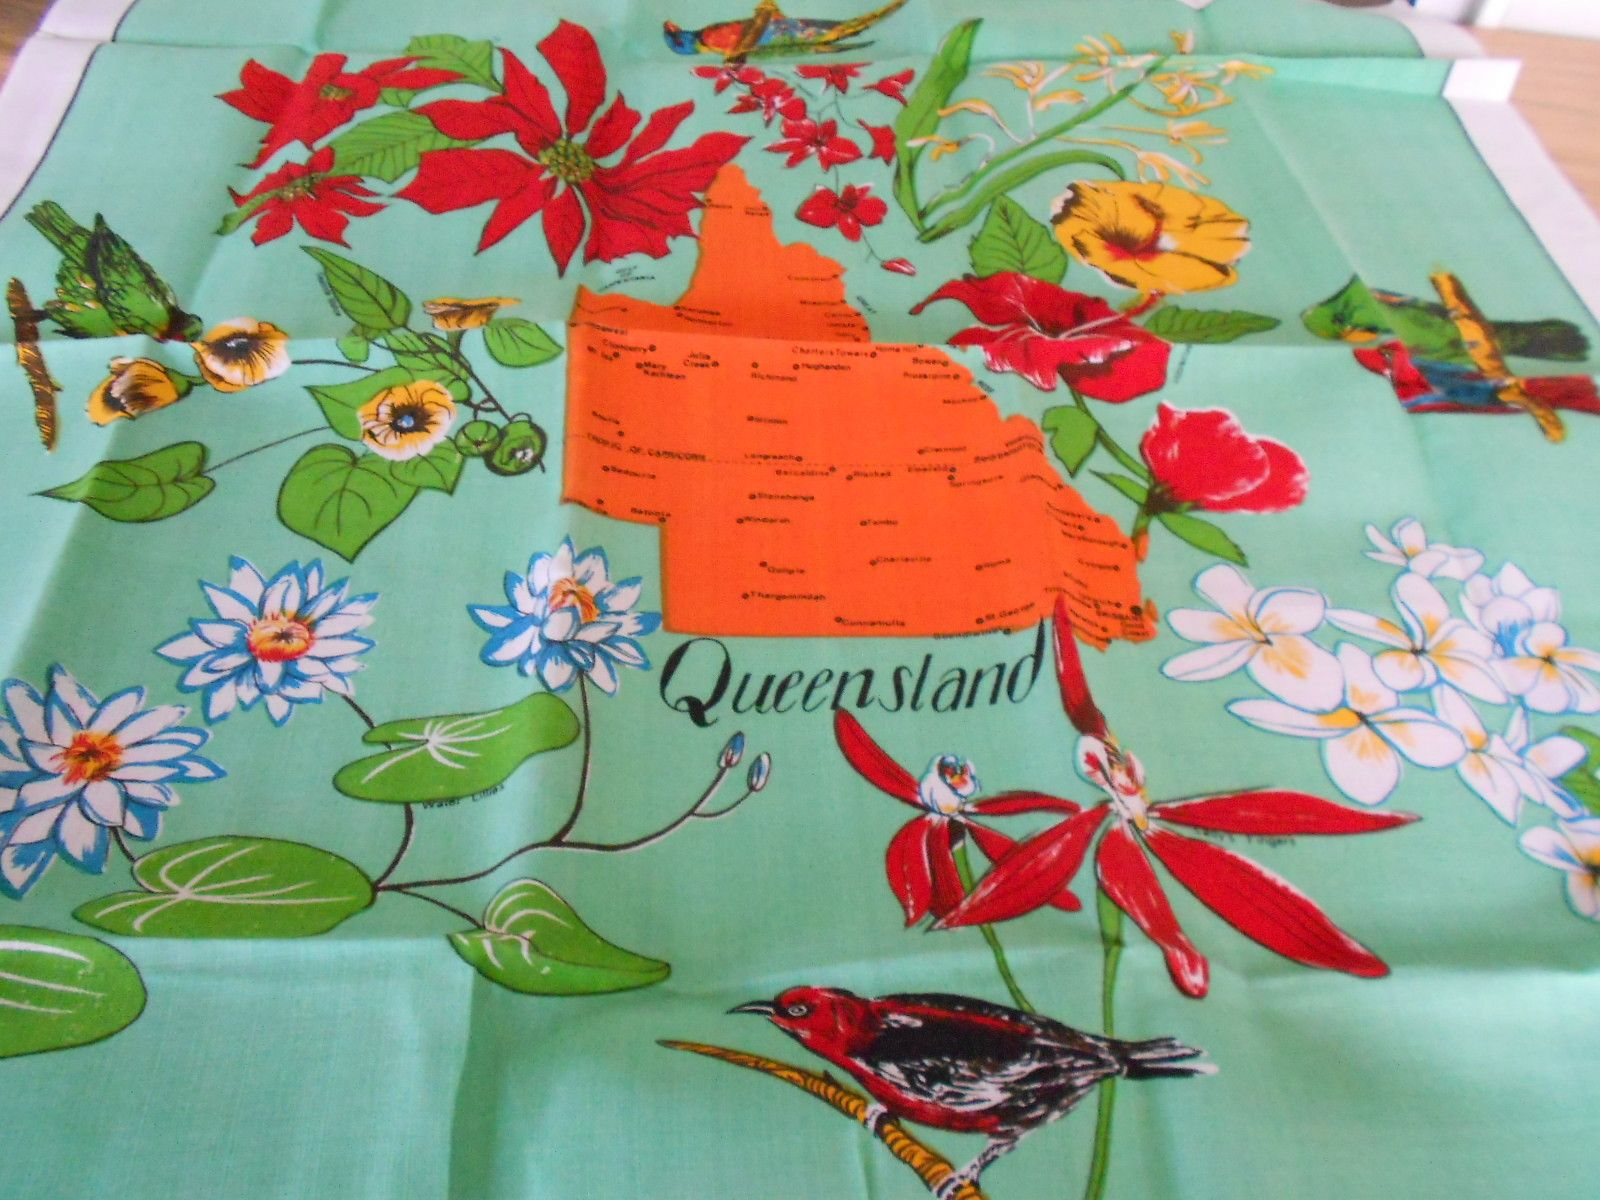 Queensland Flora Fauna Tablecloth 15 00 Just One Of The Many Retro Designs Australian Souvenir Tablecloths In My